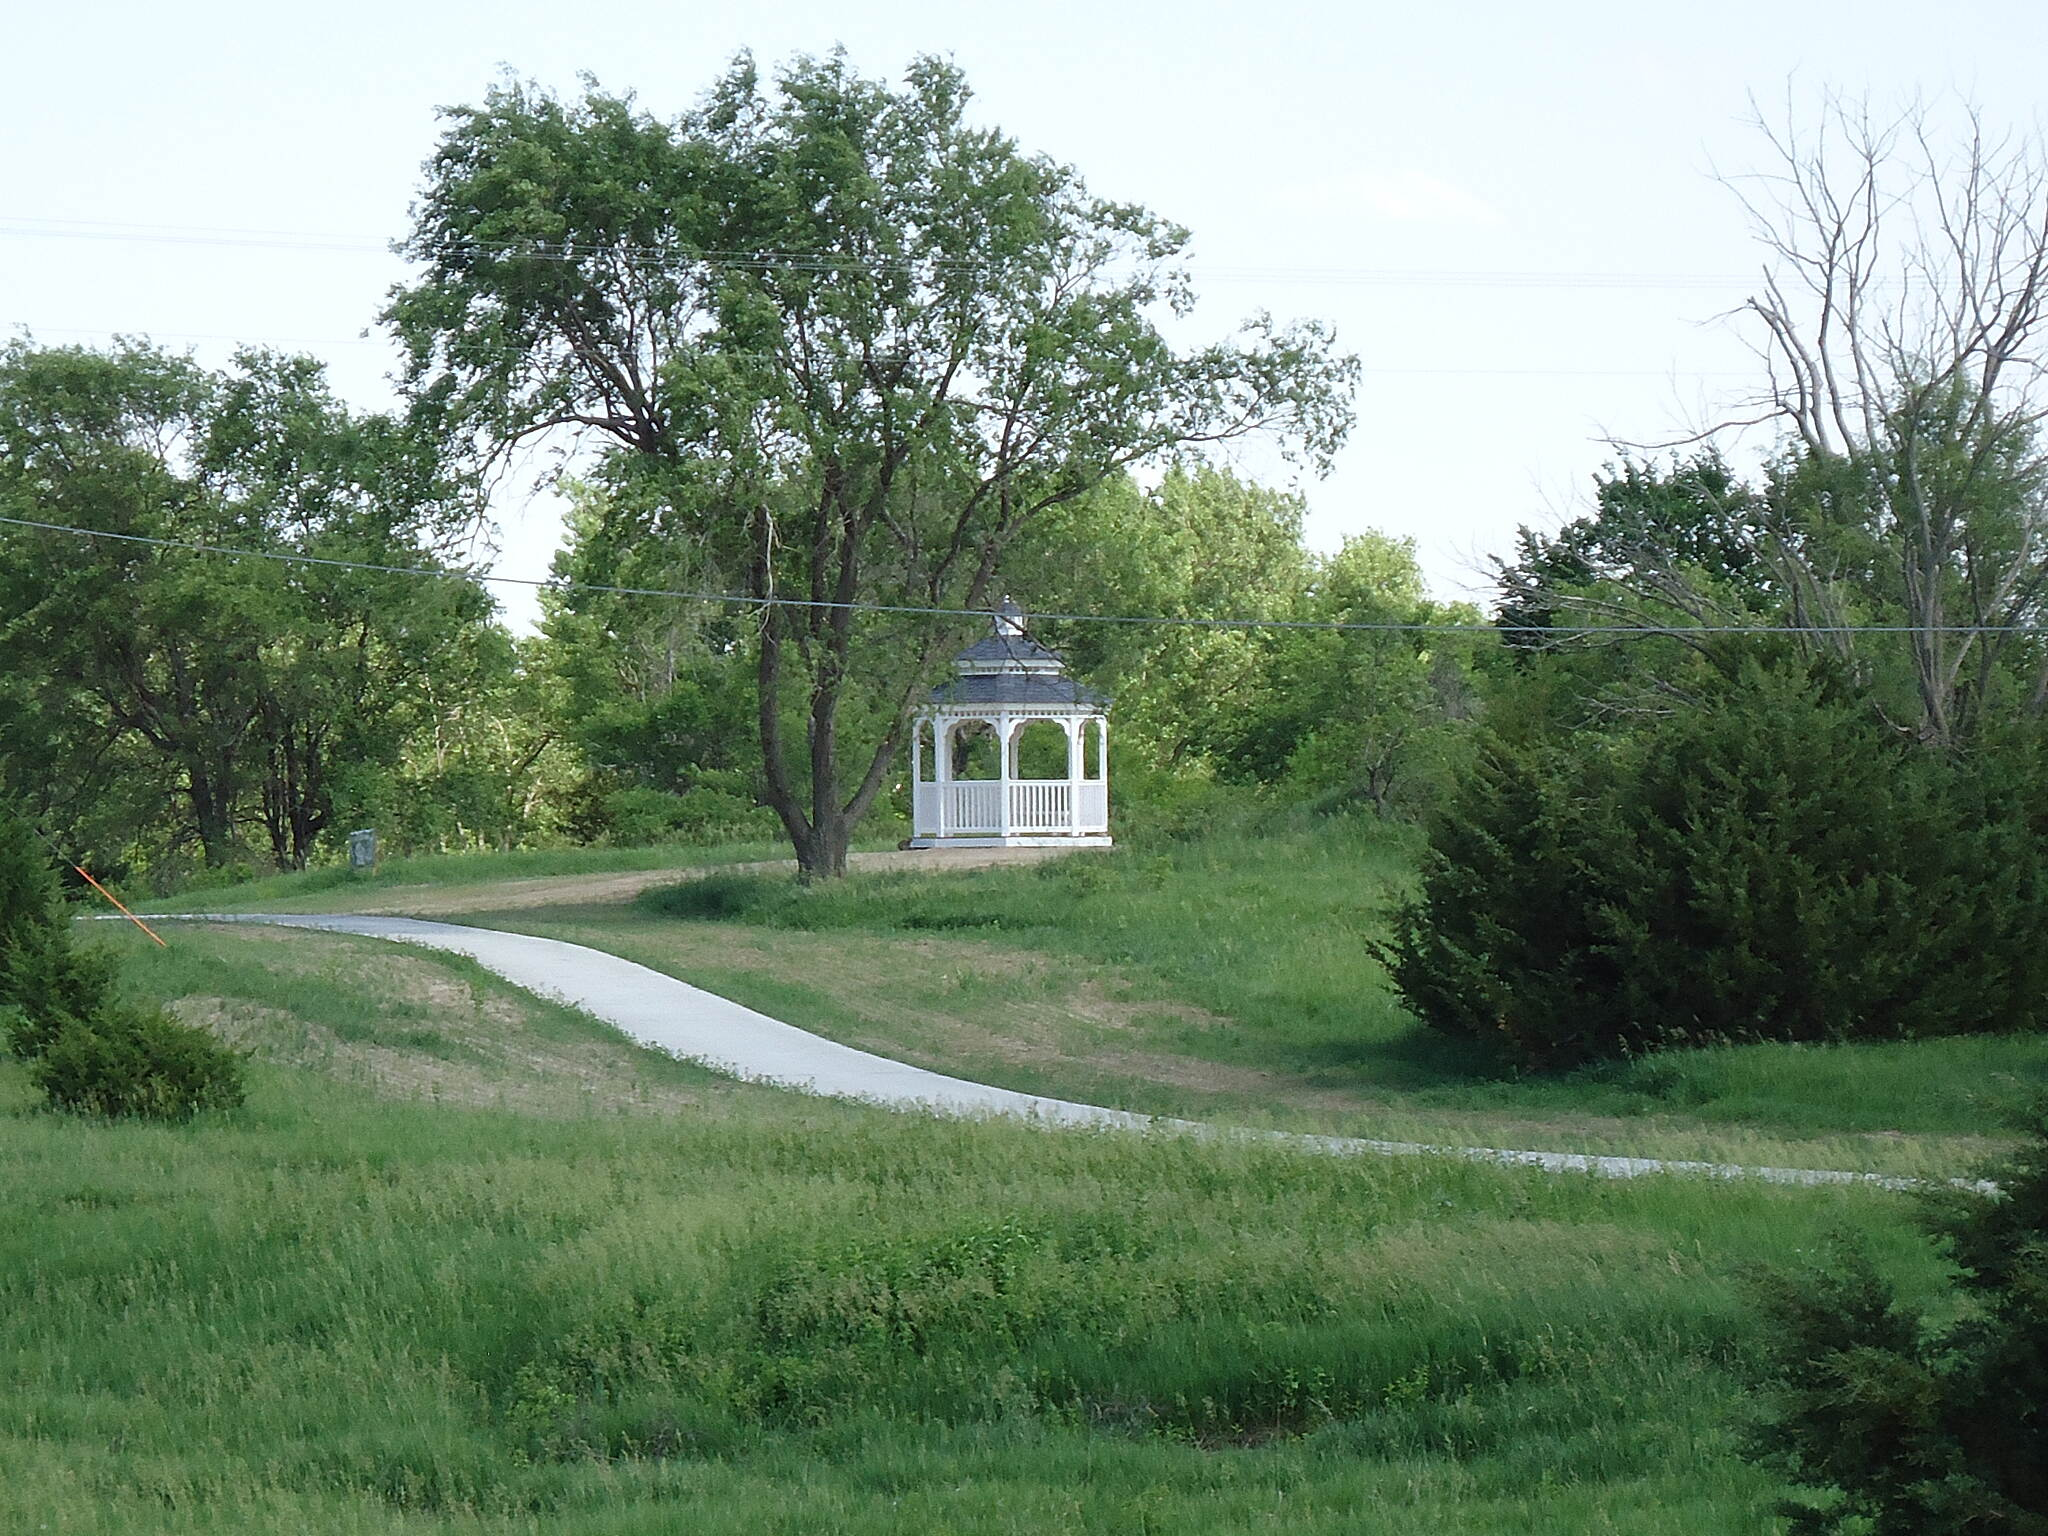 Johnson Lake Hike and Bike Trail Gazebo Near the south end of the Paul Matson Trail there is a gazebo that provides a great spot to rest and enjoy a panoramic view of Johnson Lake.